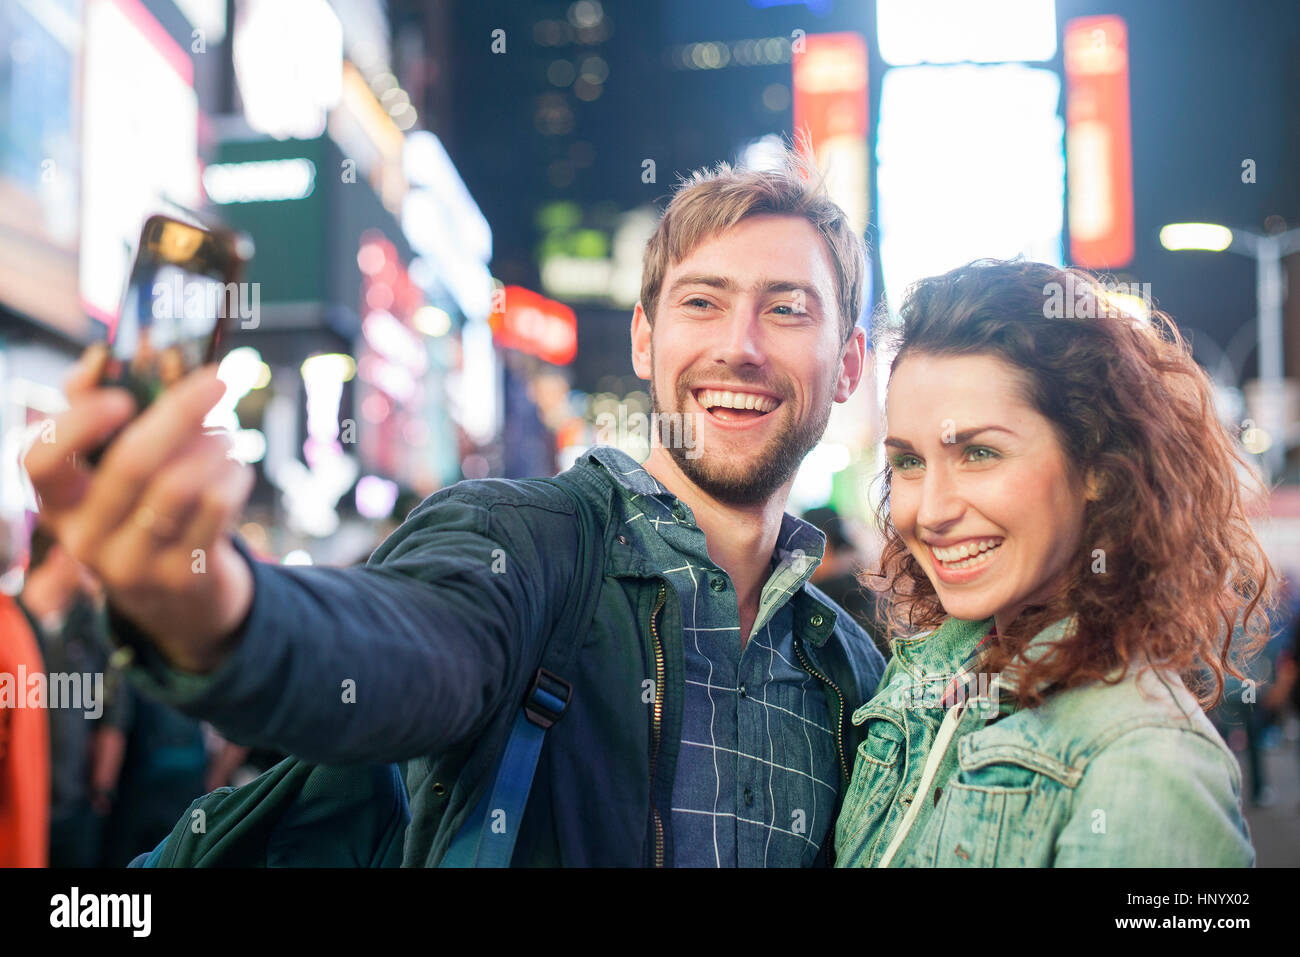 Couple en selfies Times Square, New York City, New York, USA Photo Stock